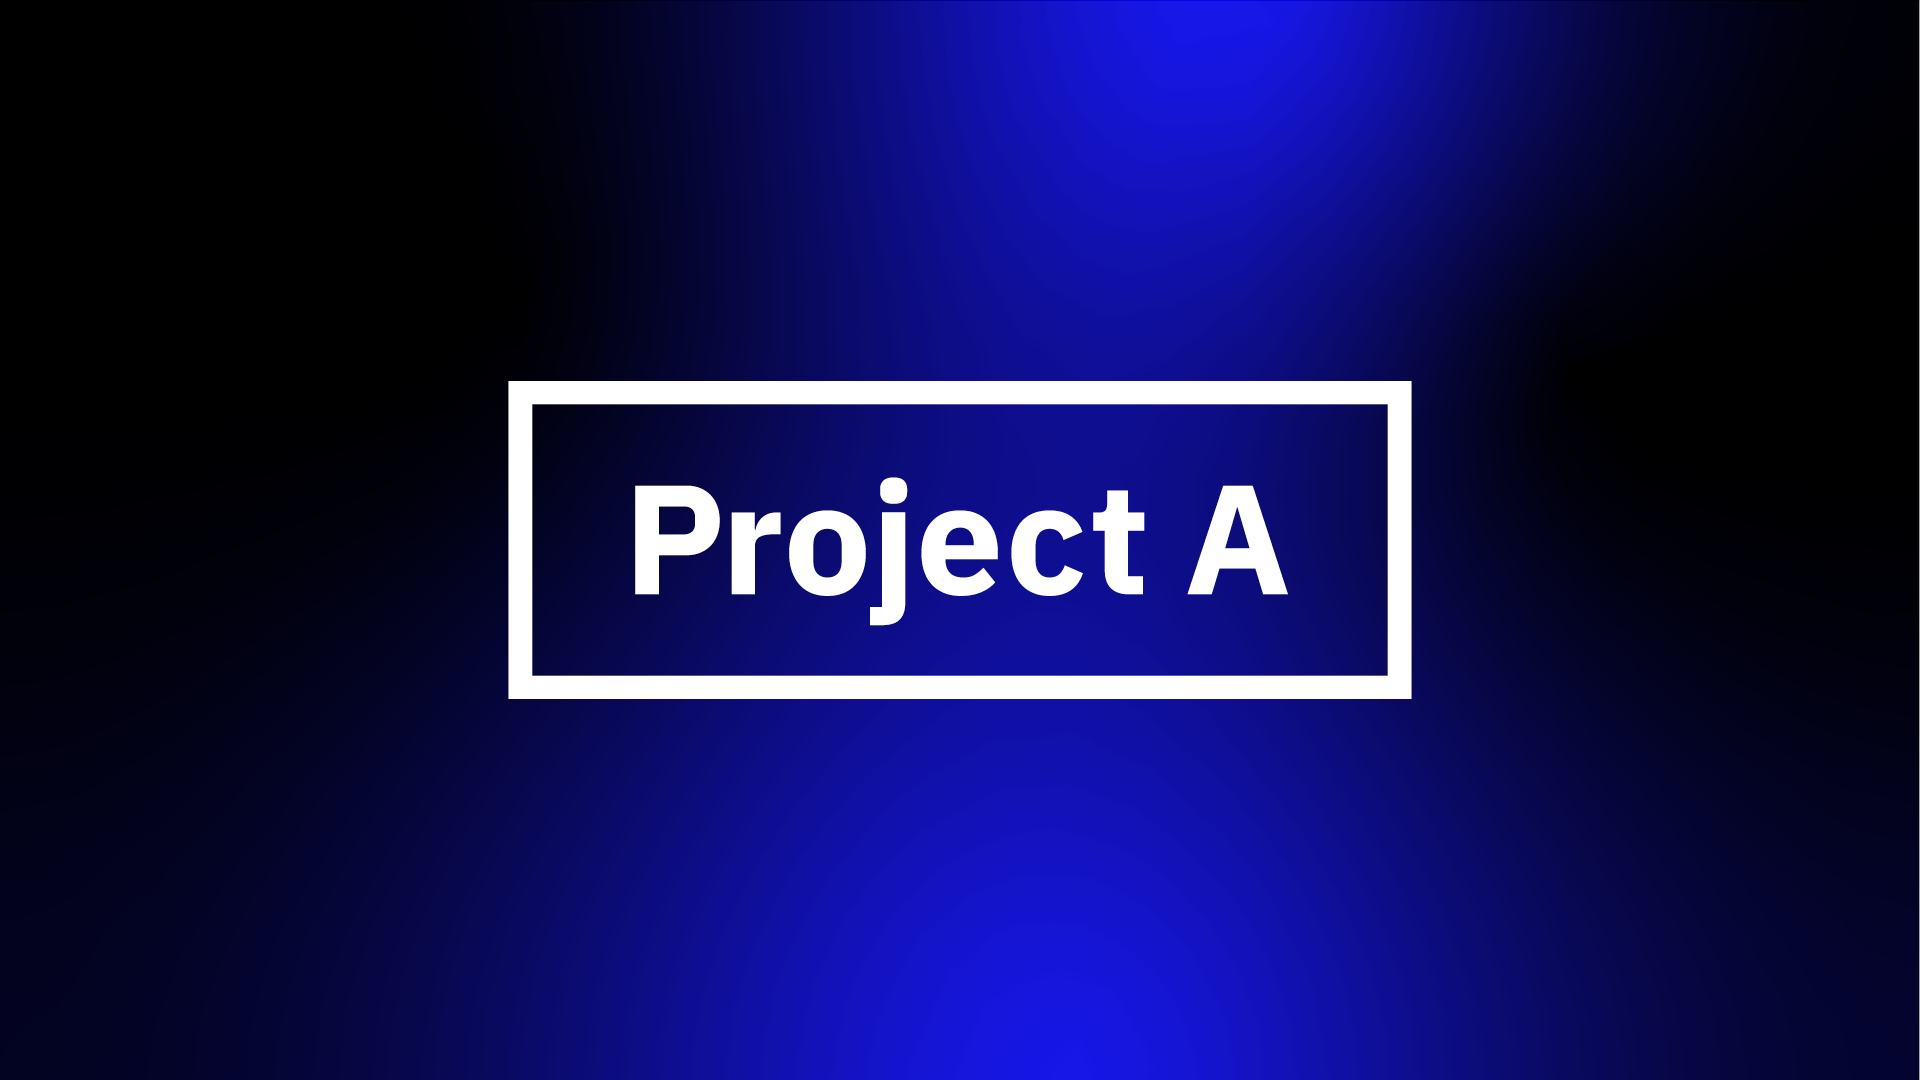 Project A. The operational VC. | Project A